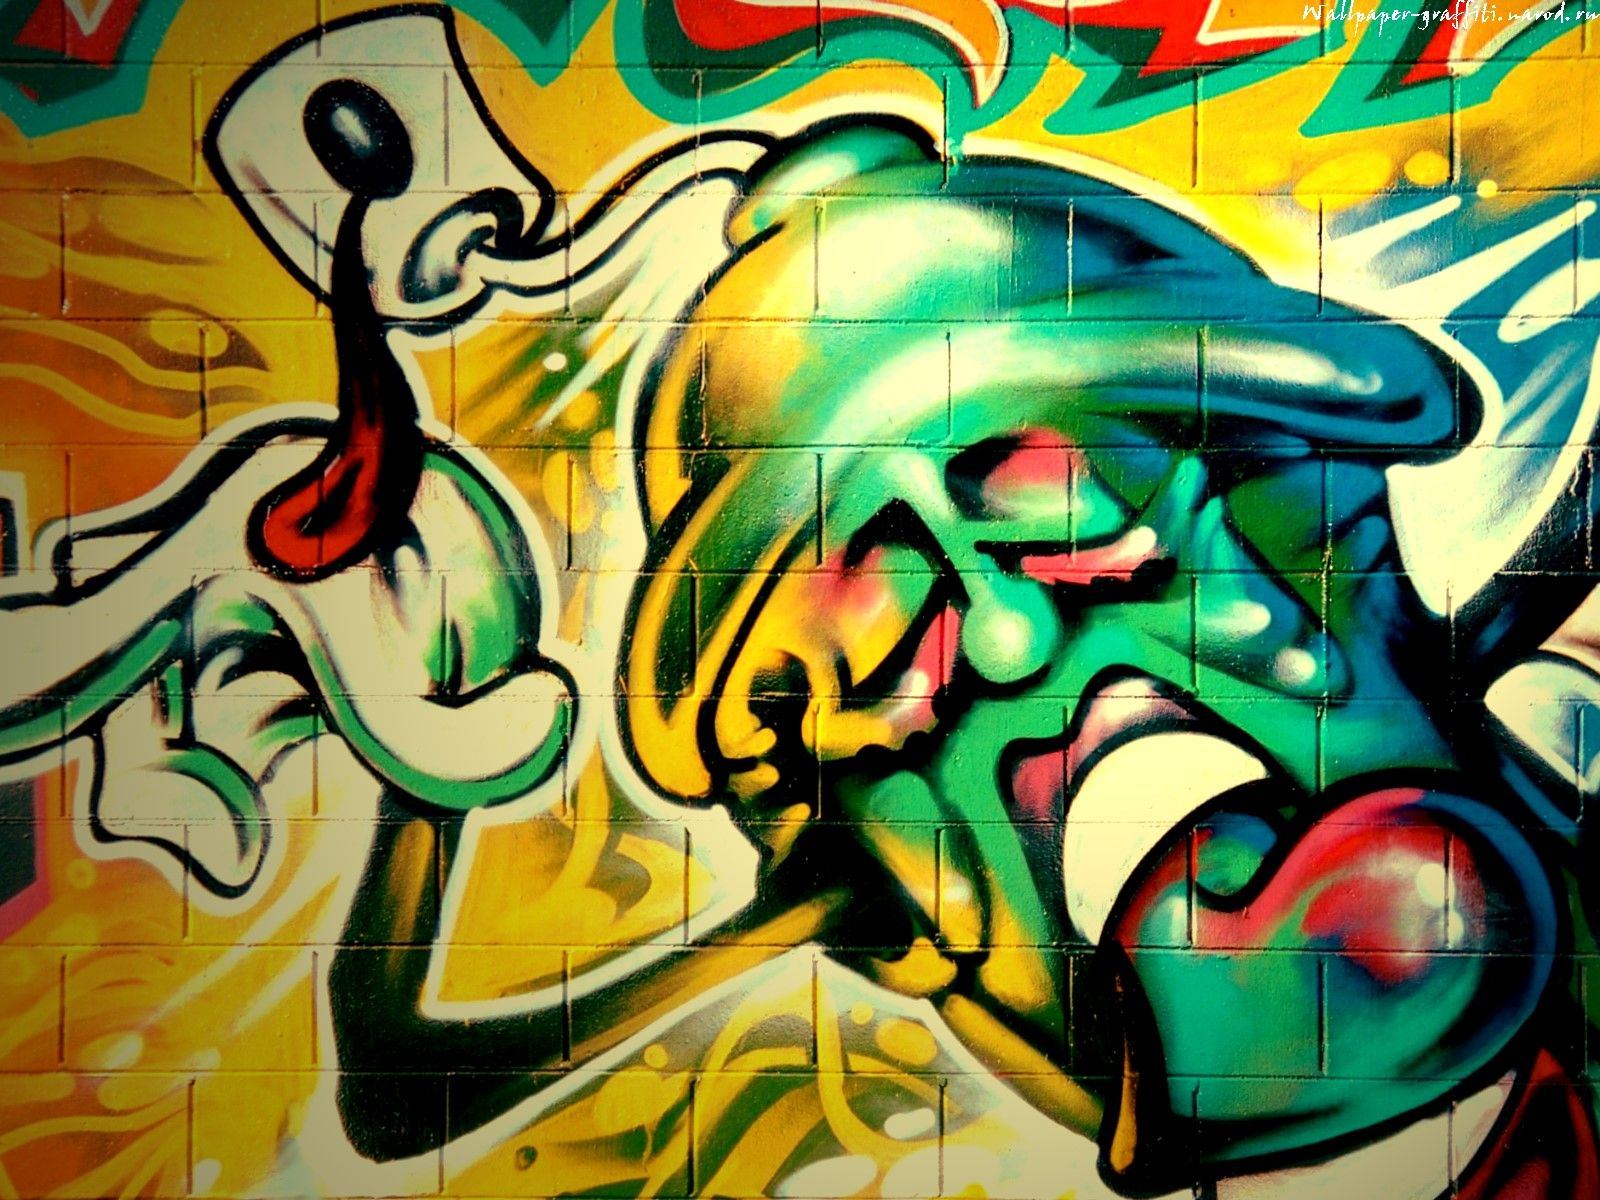 Download Free Graffiti Wallpaper Images For Laptop Desktops | HD ...